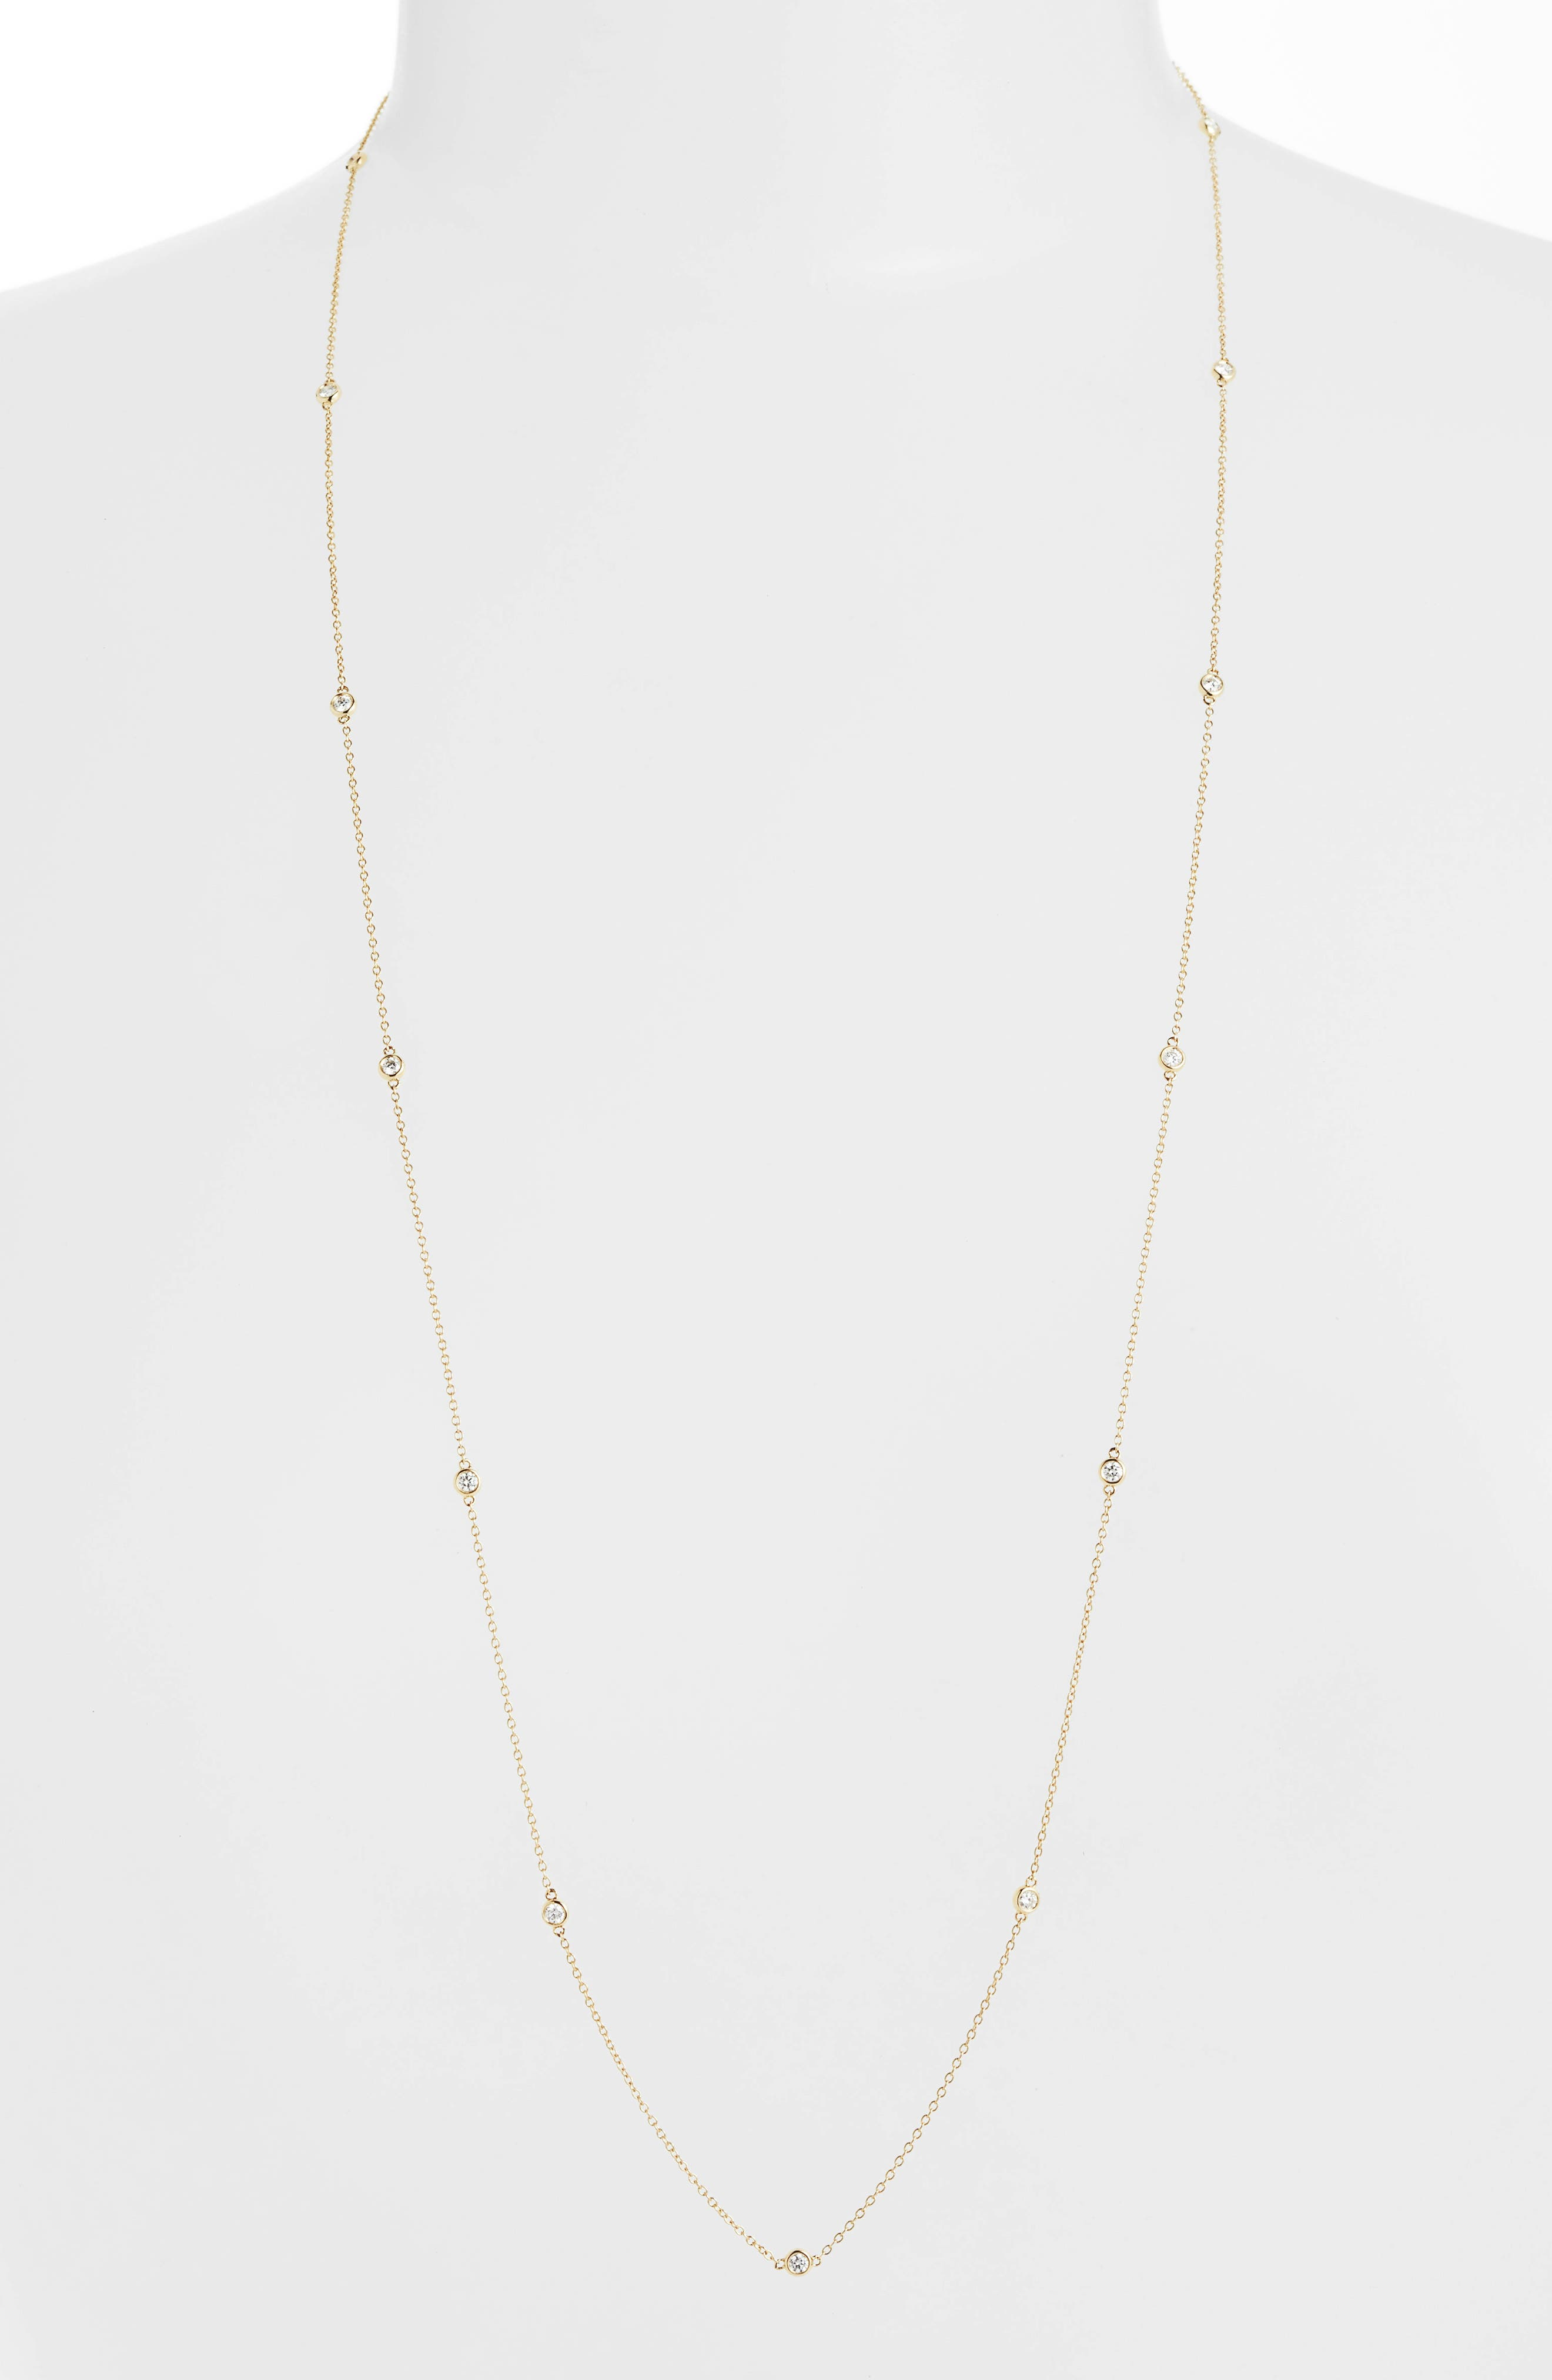 Bezel-set beauties-13 in all-create shining stations along a handcrafted chain that will elevate any outfit. Style Name: Bony Levy Diamonds By The Yard Necklace (Nordstrom Exclusive). Style Number: 5611094 1. Available in stores.